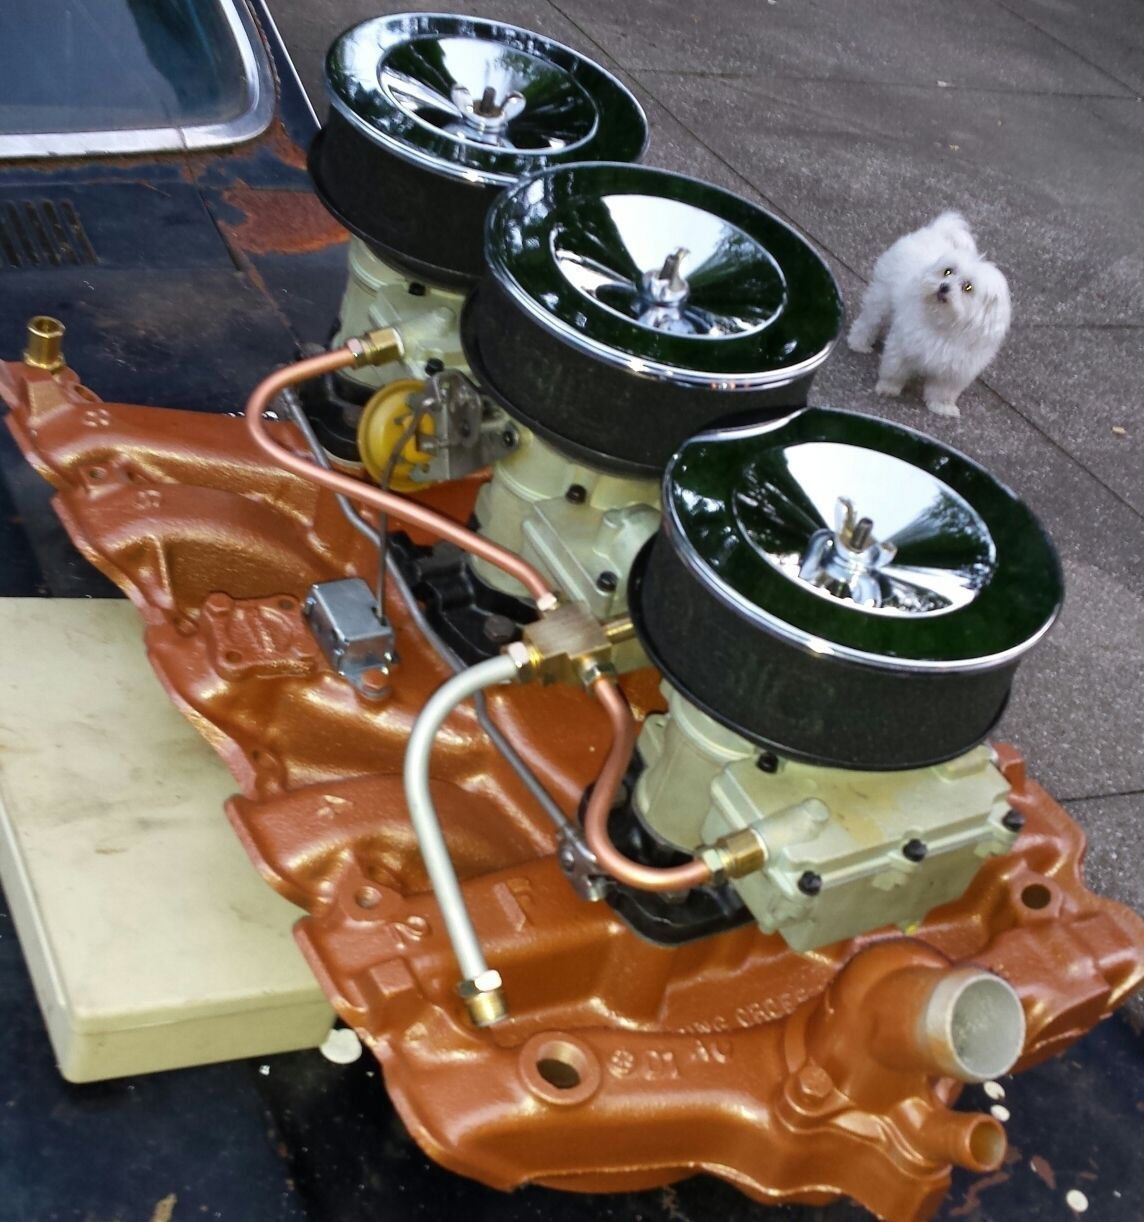 Rare Olds Stuff: This Short Run 1966 Only L69 Tri-Carb Olds Intake And Carbs